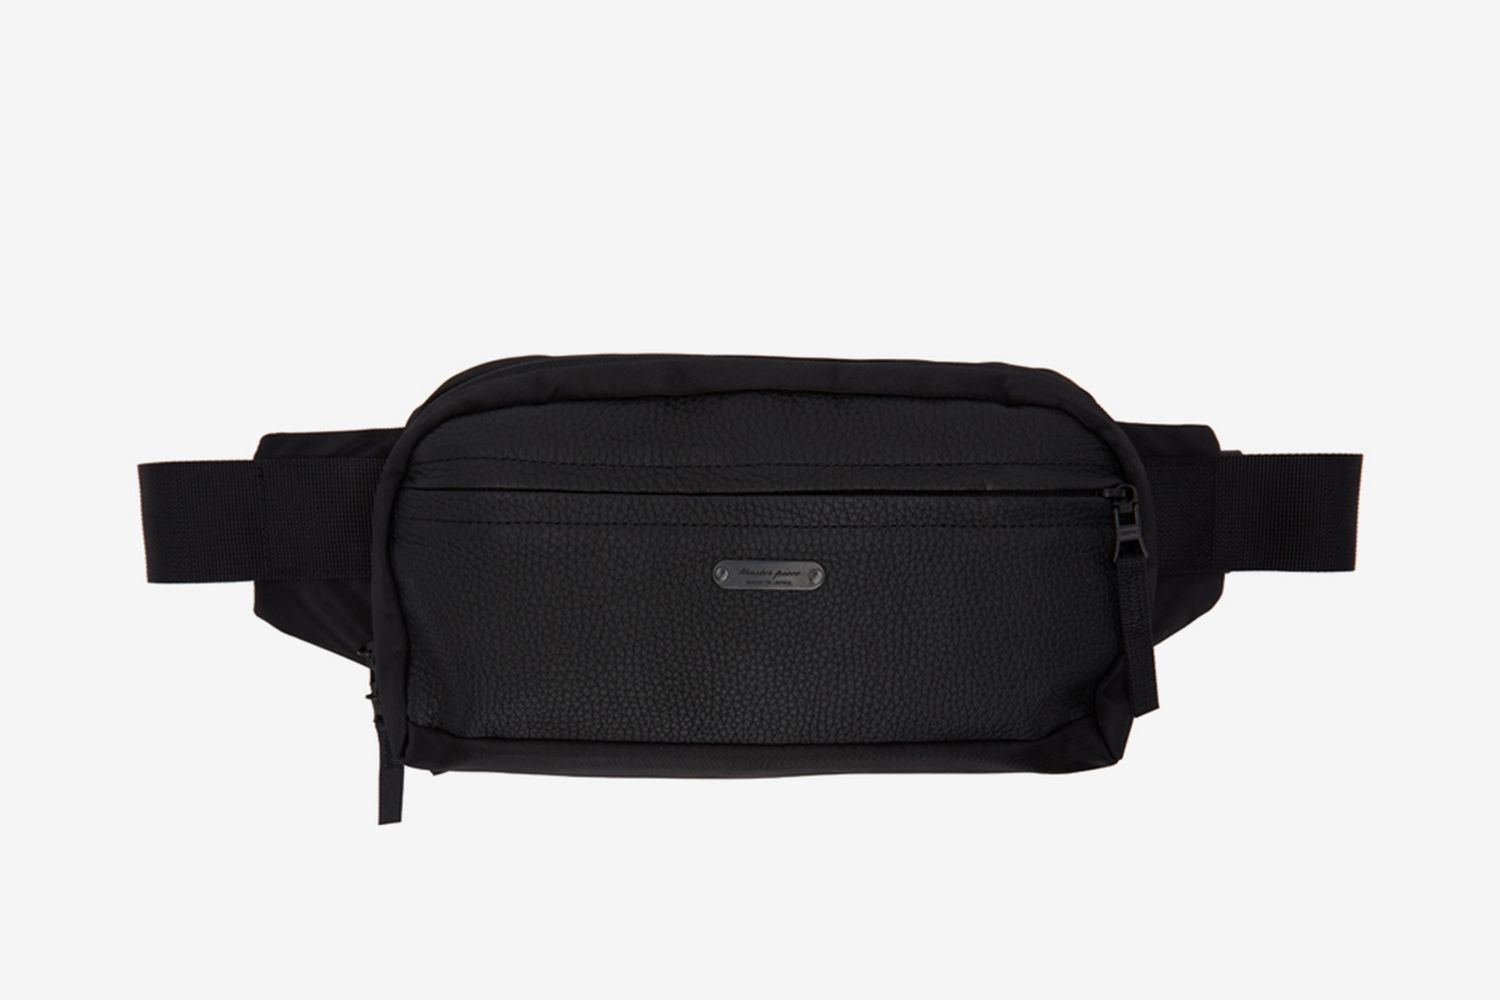 Spec Version 2 Waist Bag